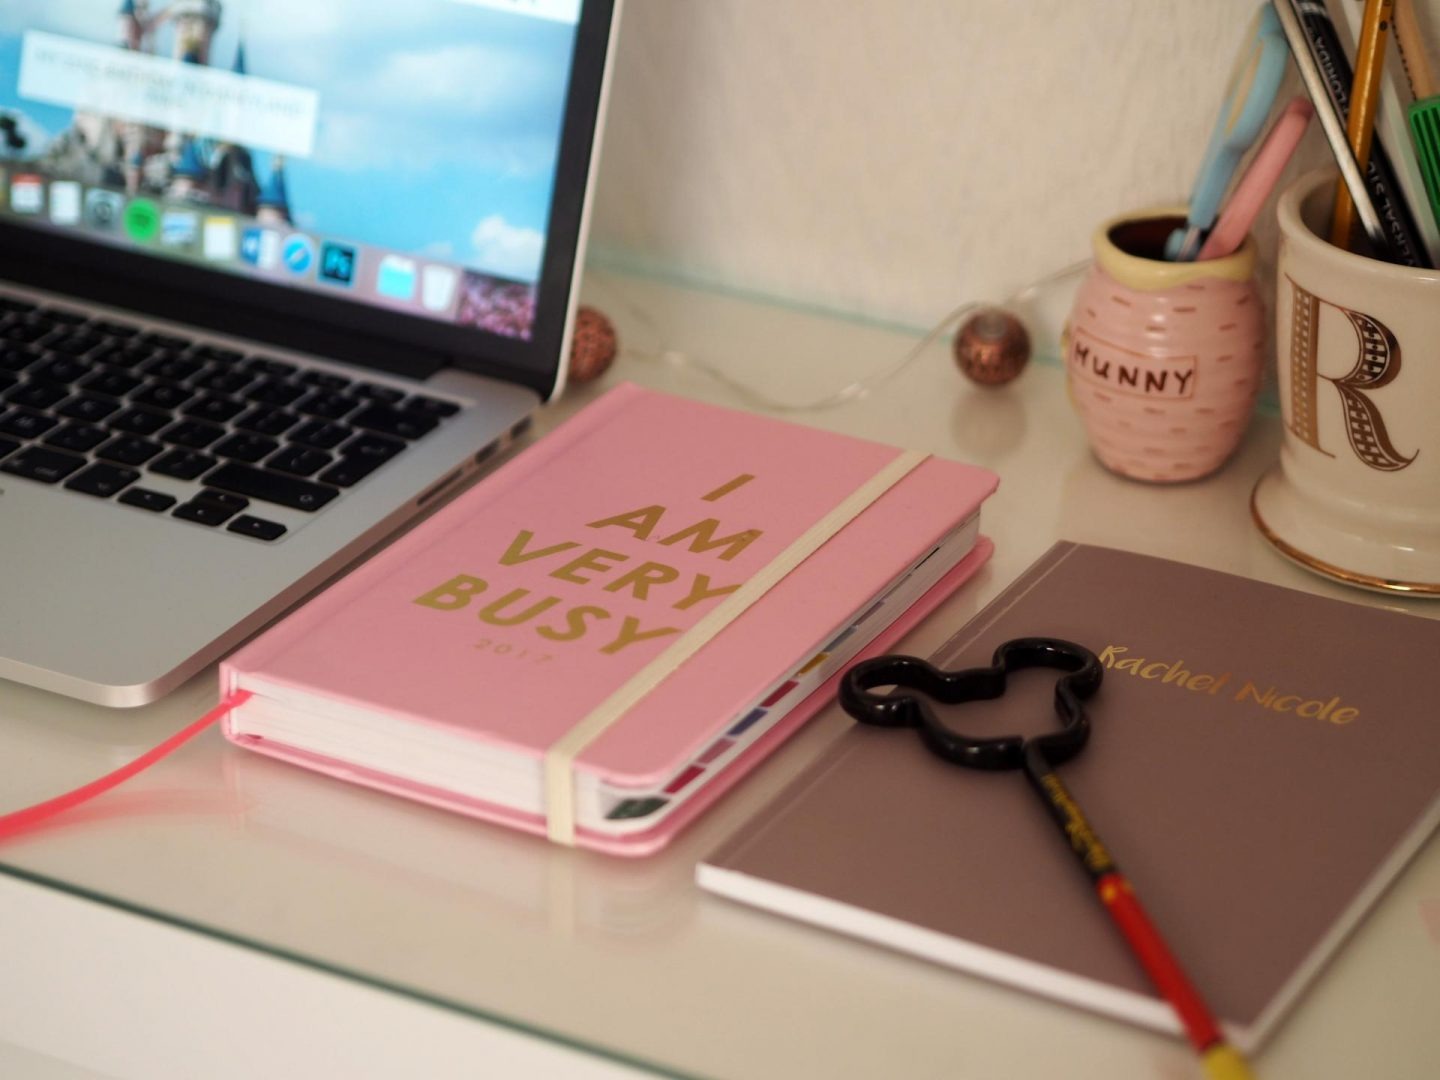 Getting the most out of your day, Increase Productivity - Rachel Nicole UK Blogger